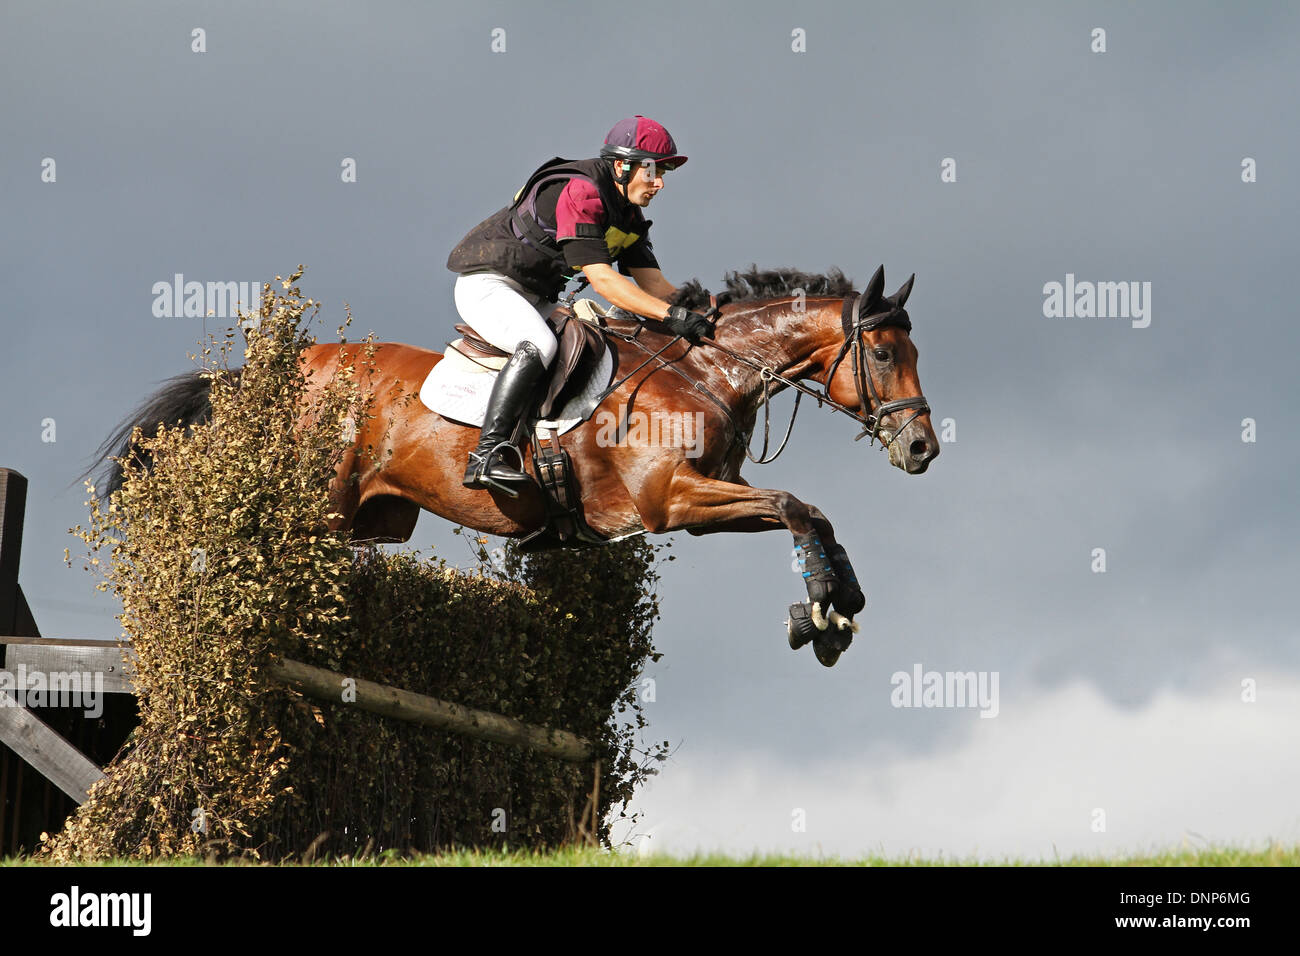 Horse and rider jumping a fence, from a low vantage point looking upwards a dark stormy sky - Stock Image